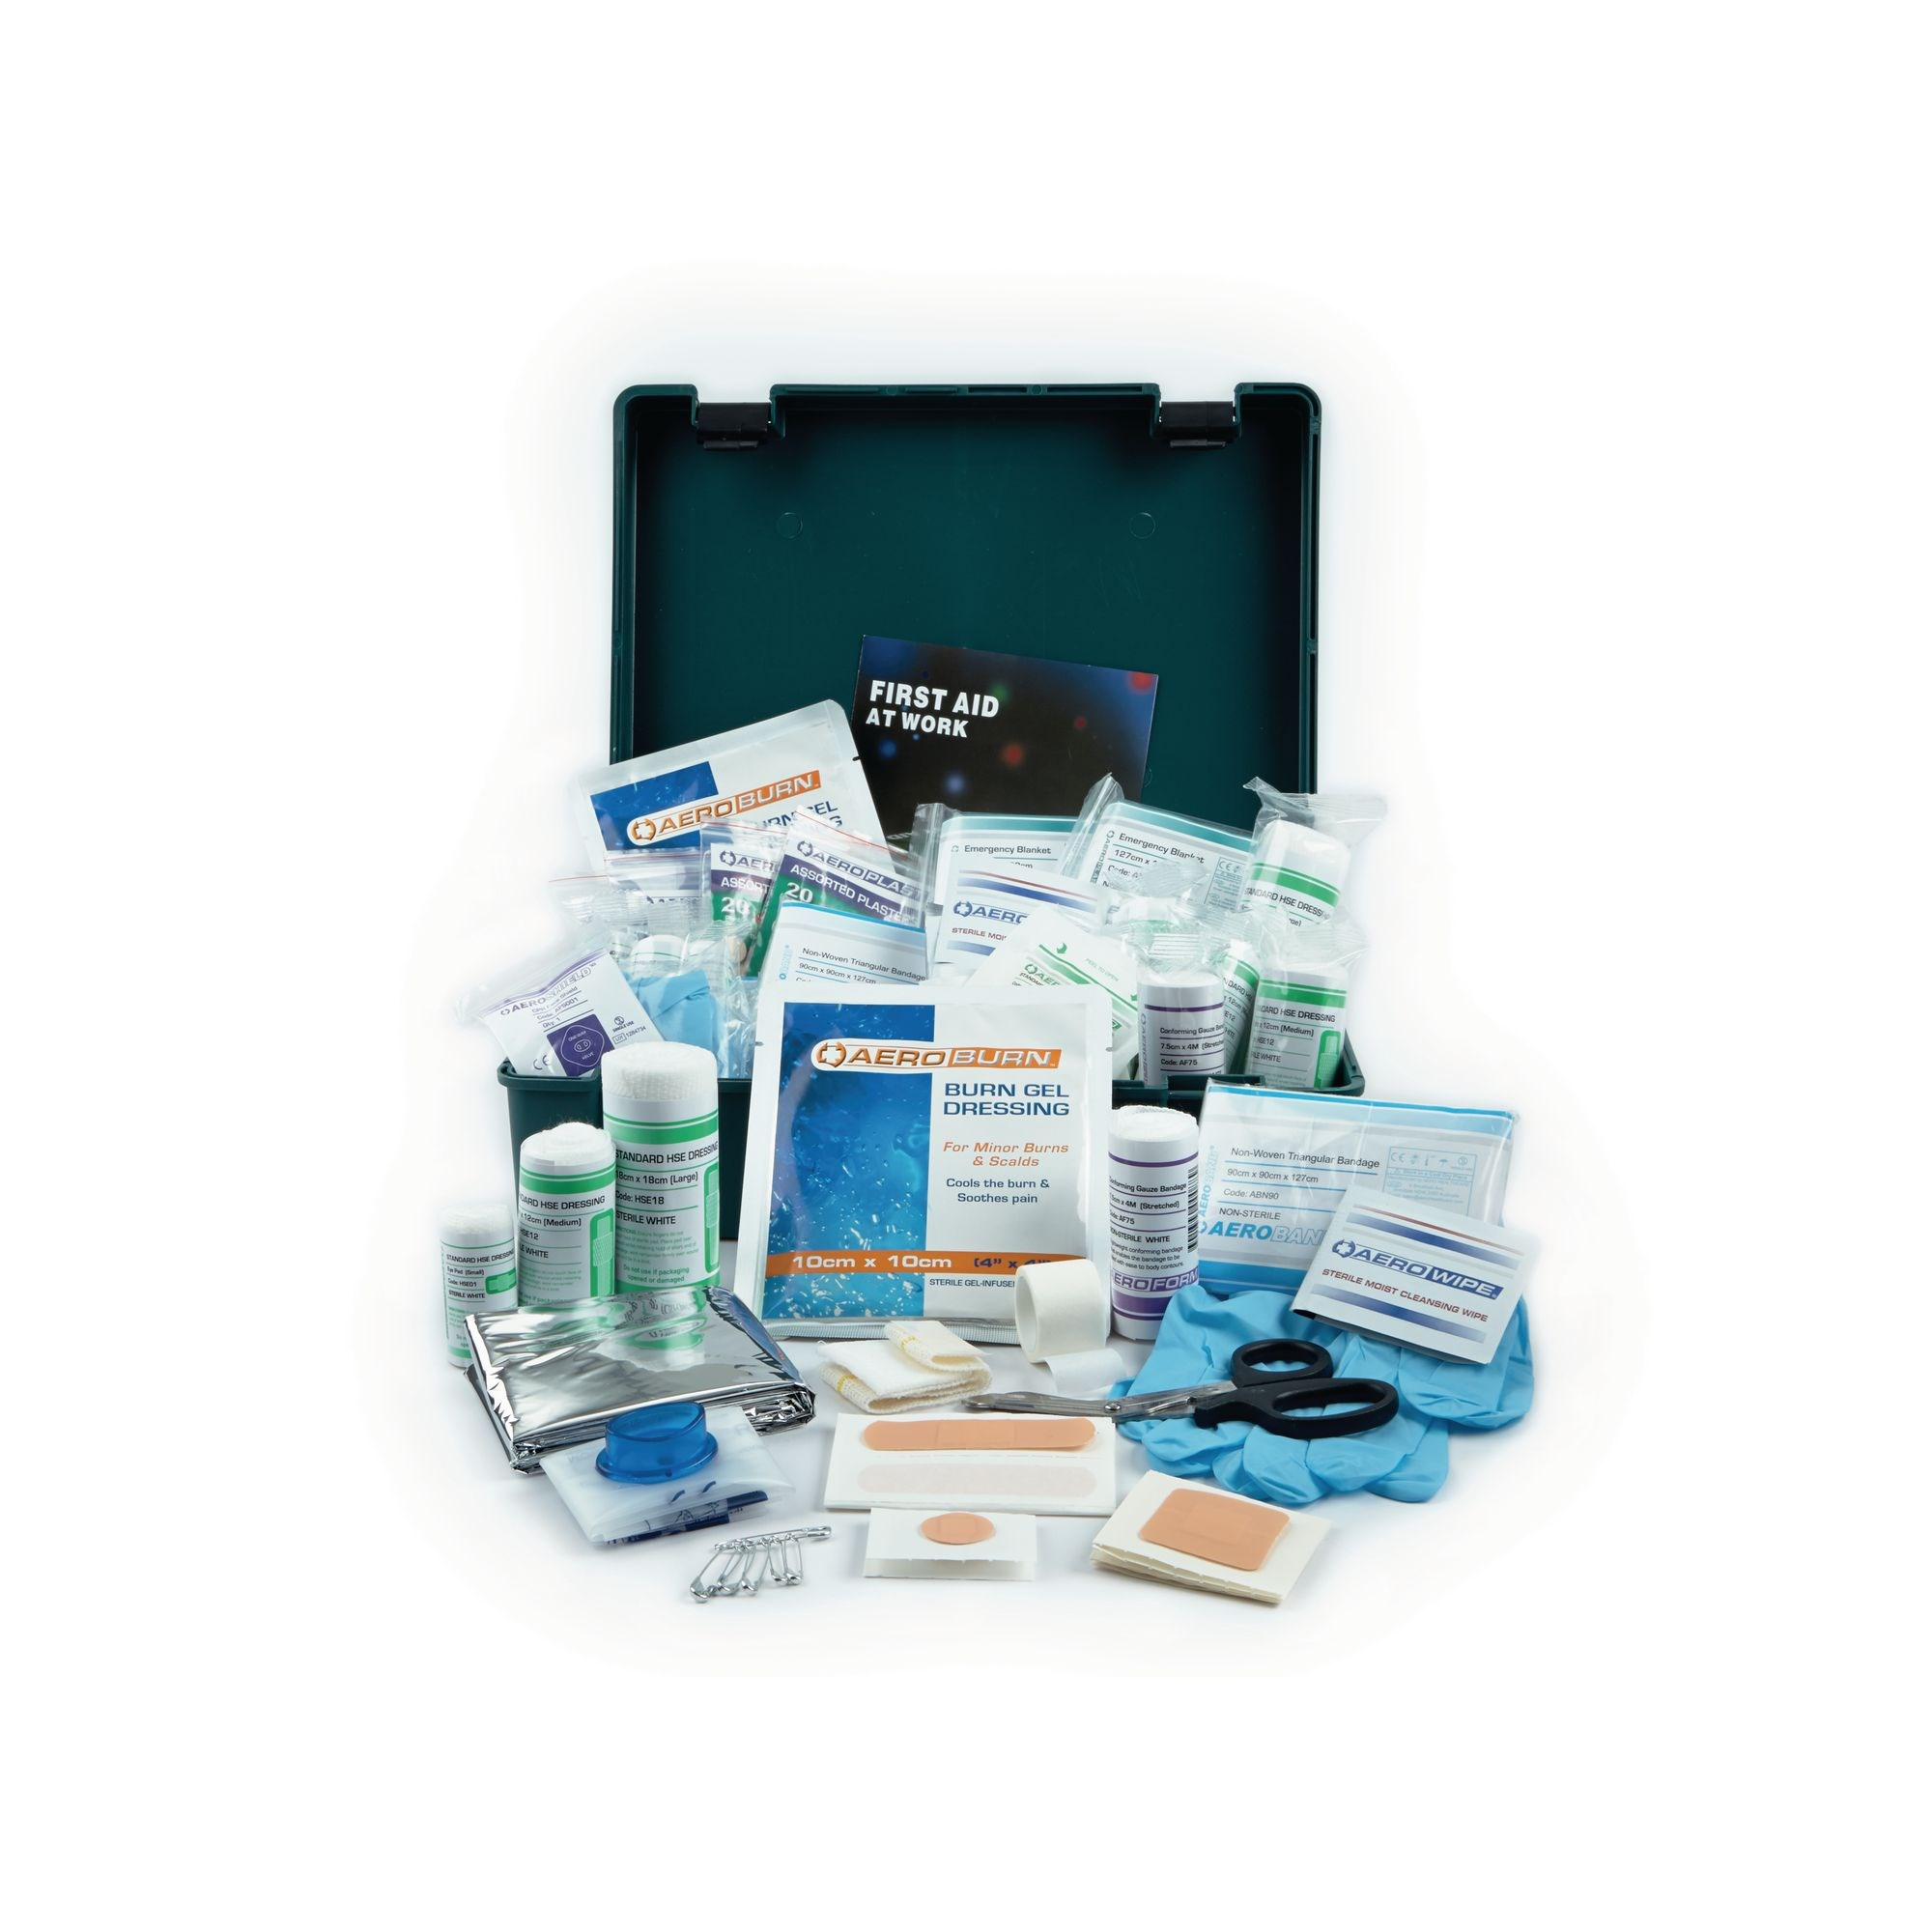 BS8599 First Aid Kit - B